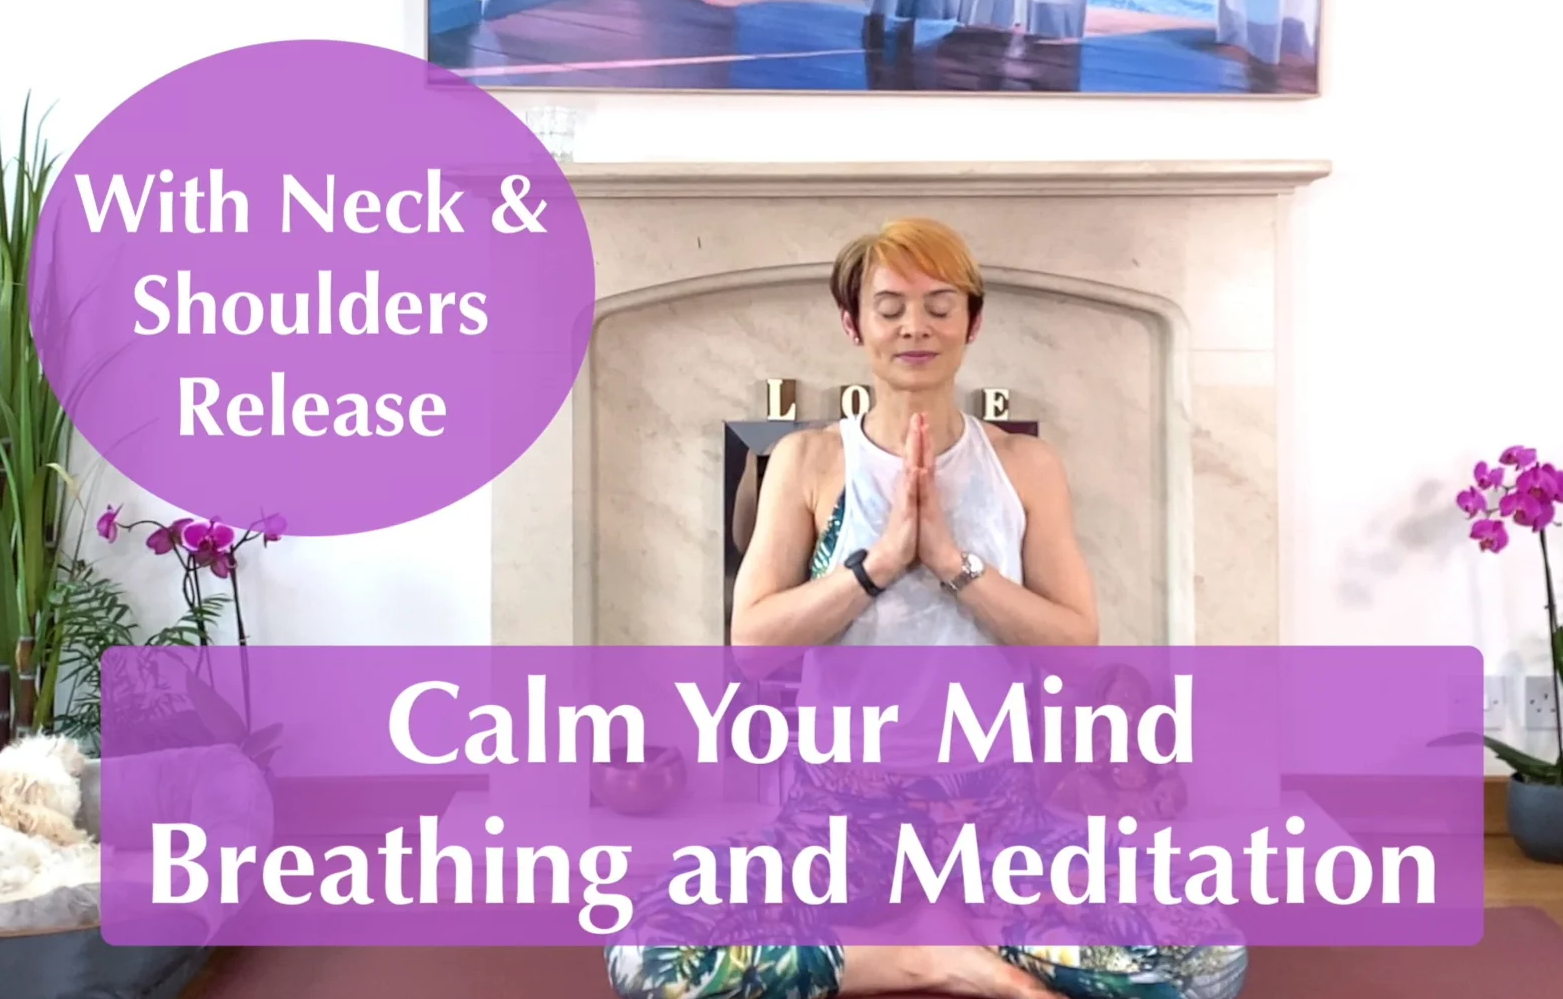 Olga Oakenfold - 25 min Release Tension of Neck & Shoulders - Calm Your Mind - Breathing and Meditation